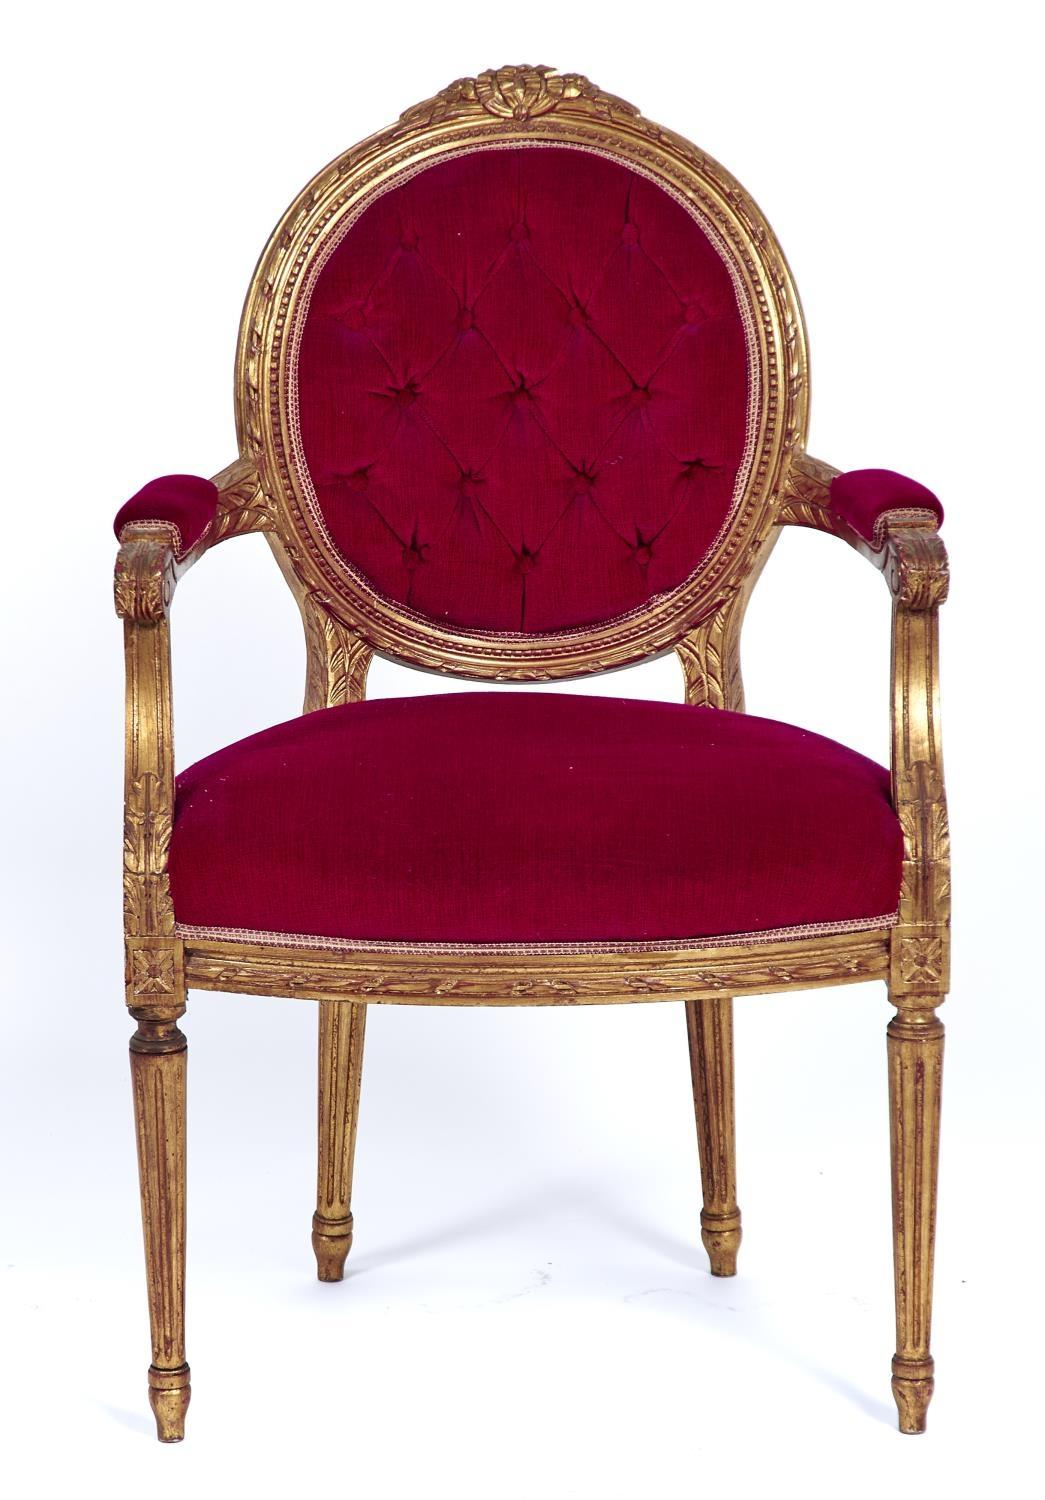 AN UPHOLSTERED GOLD PAINTED ELBOW CHAIR IN LOUIS XVI STYLE, LATE 20TH C, THE OVAL BACK CARVED RIBBON